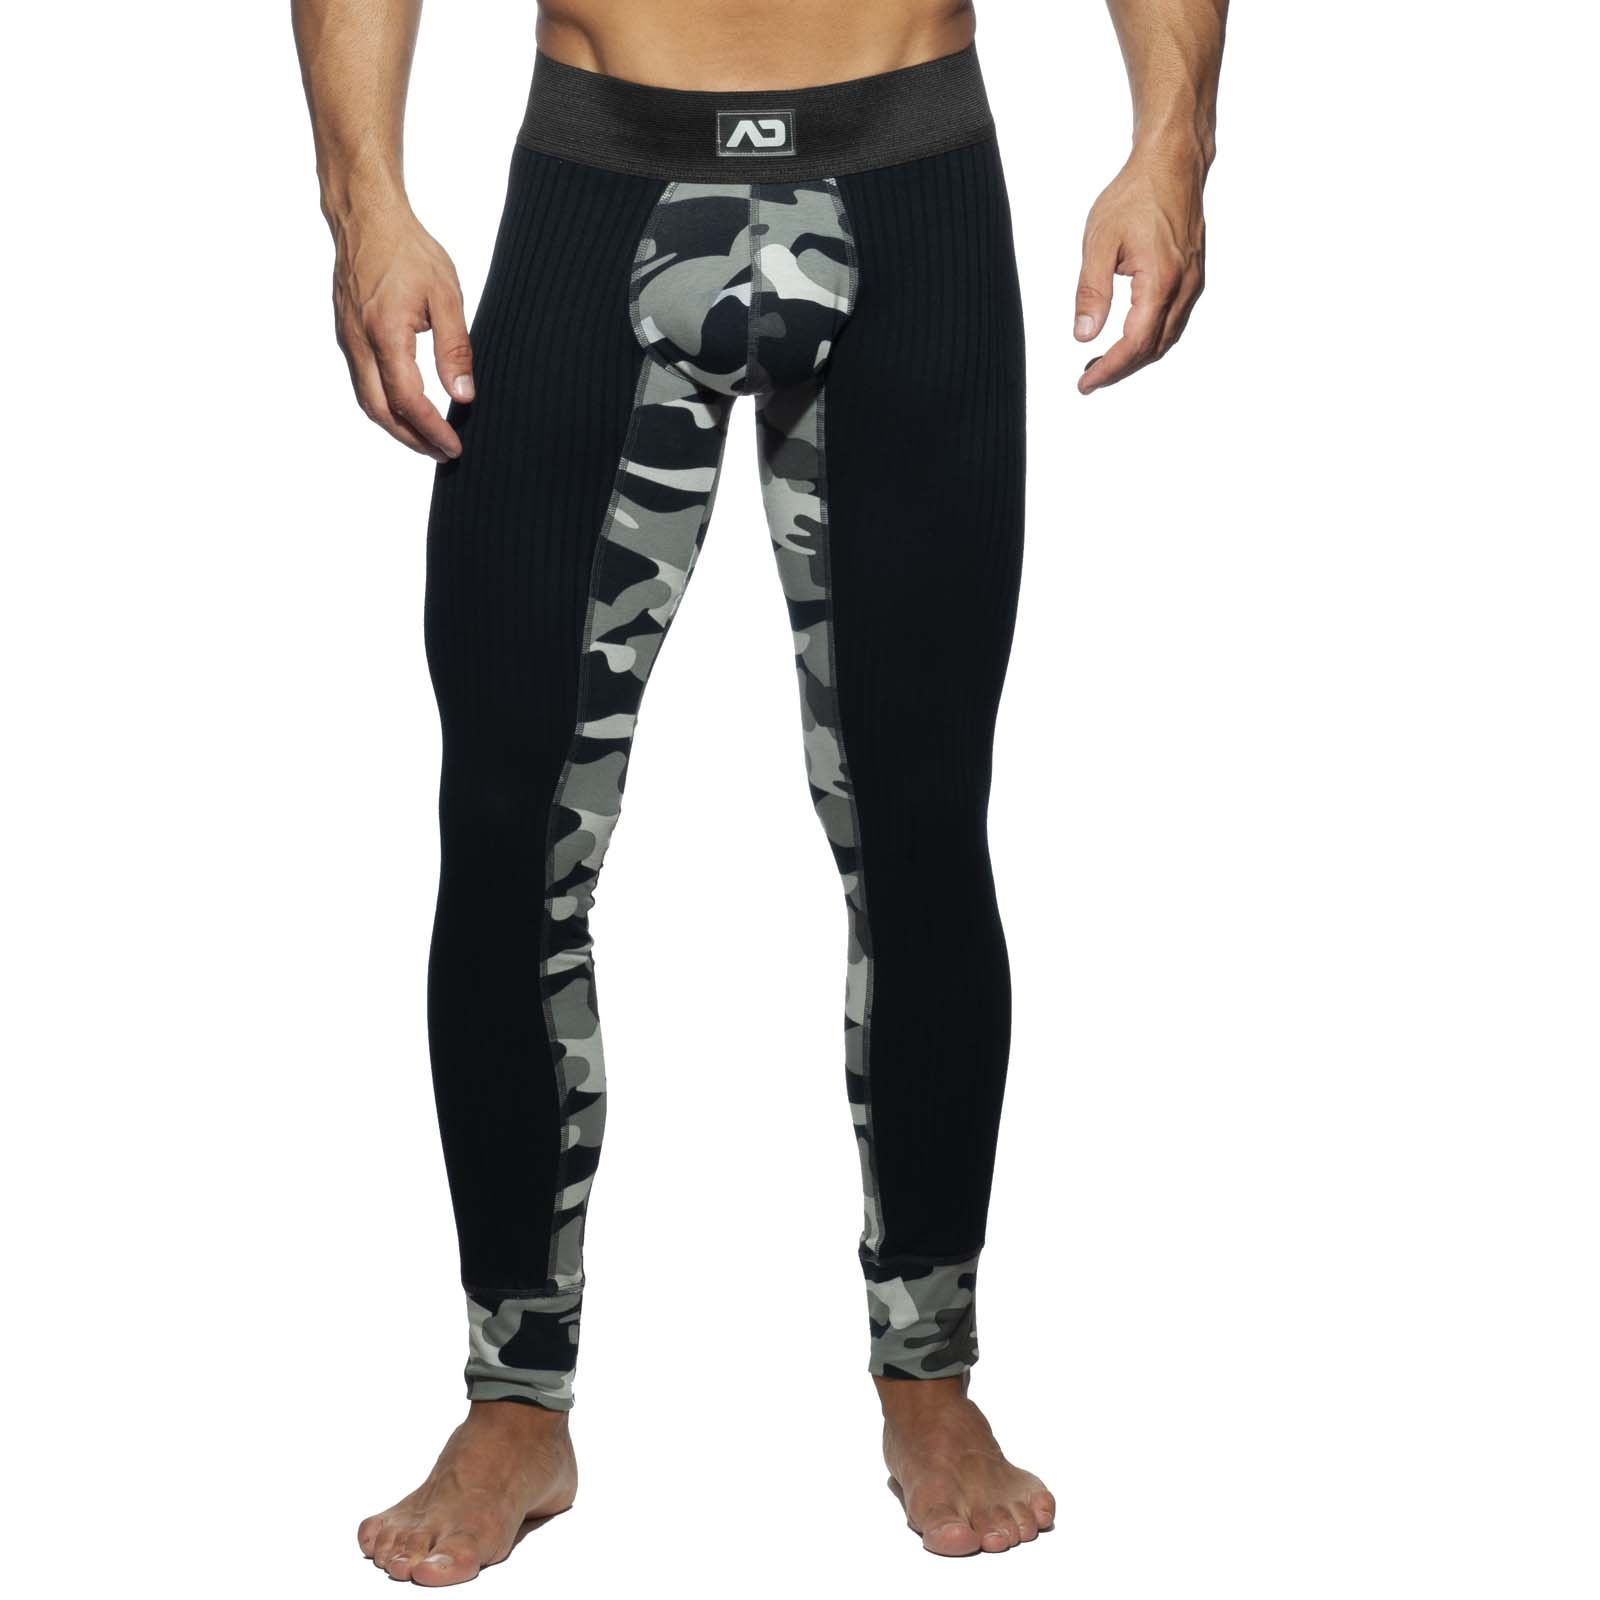 Legging Addicted Camo AD781